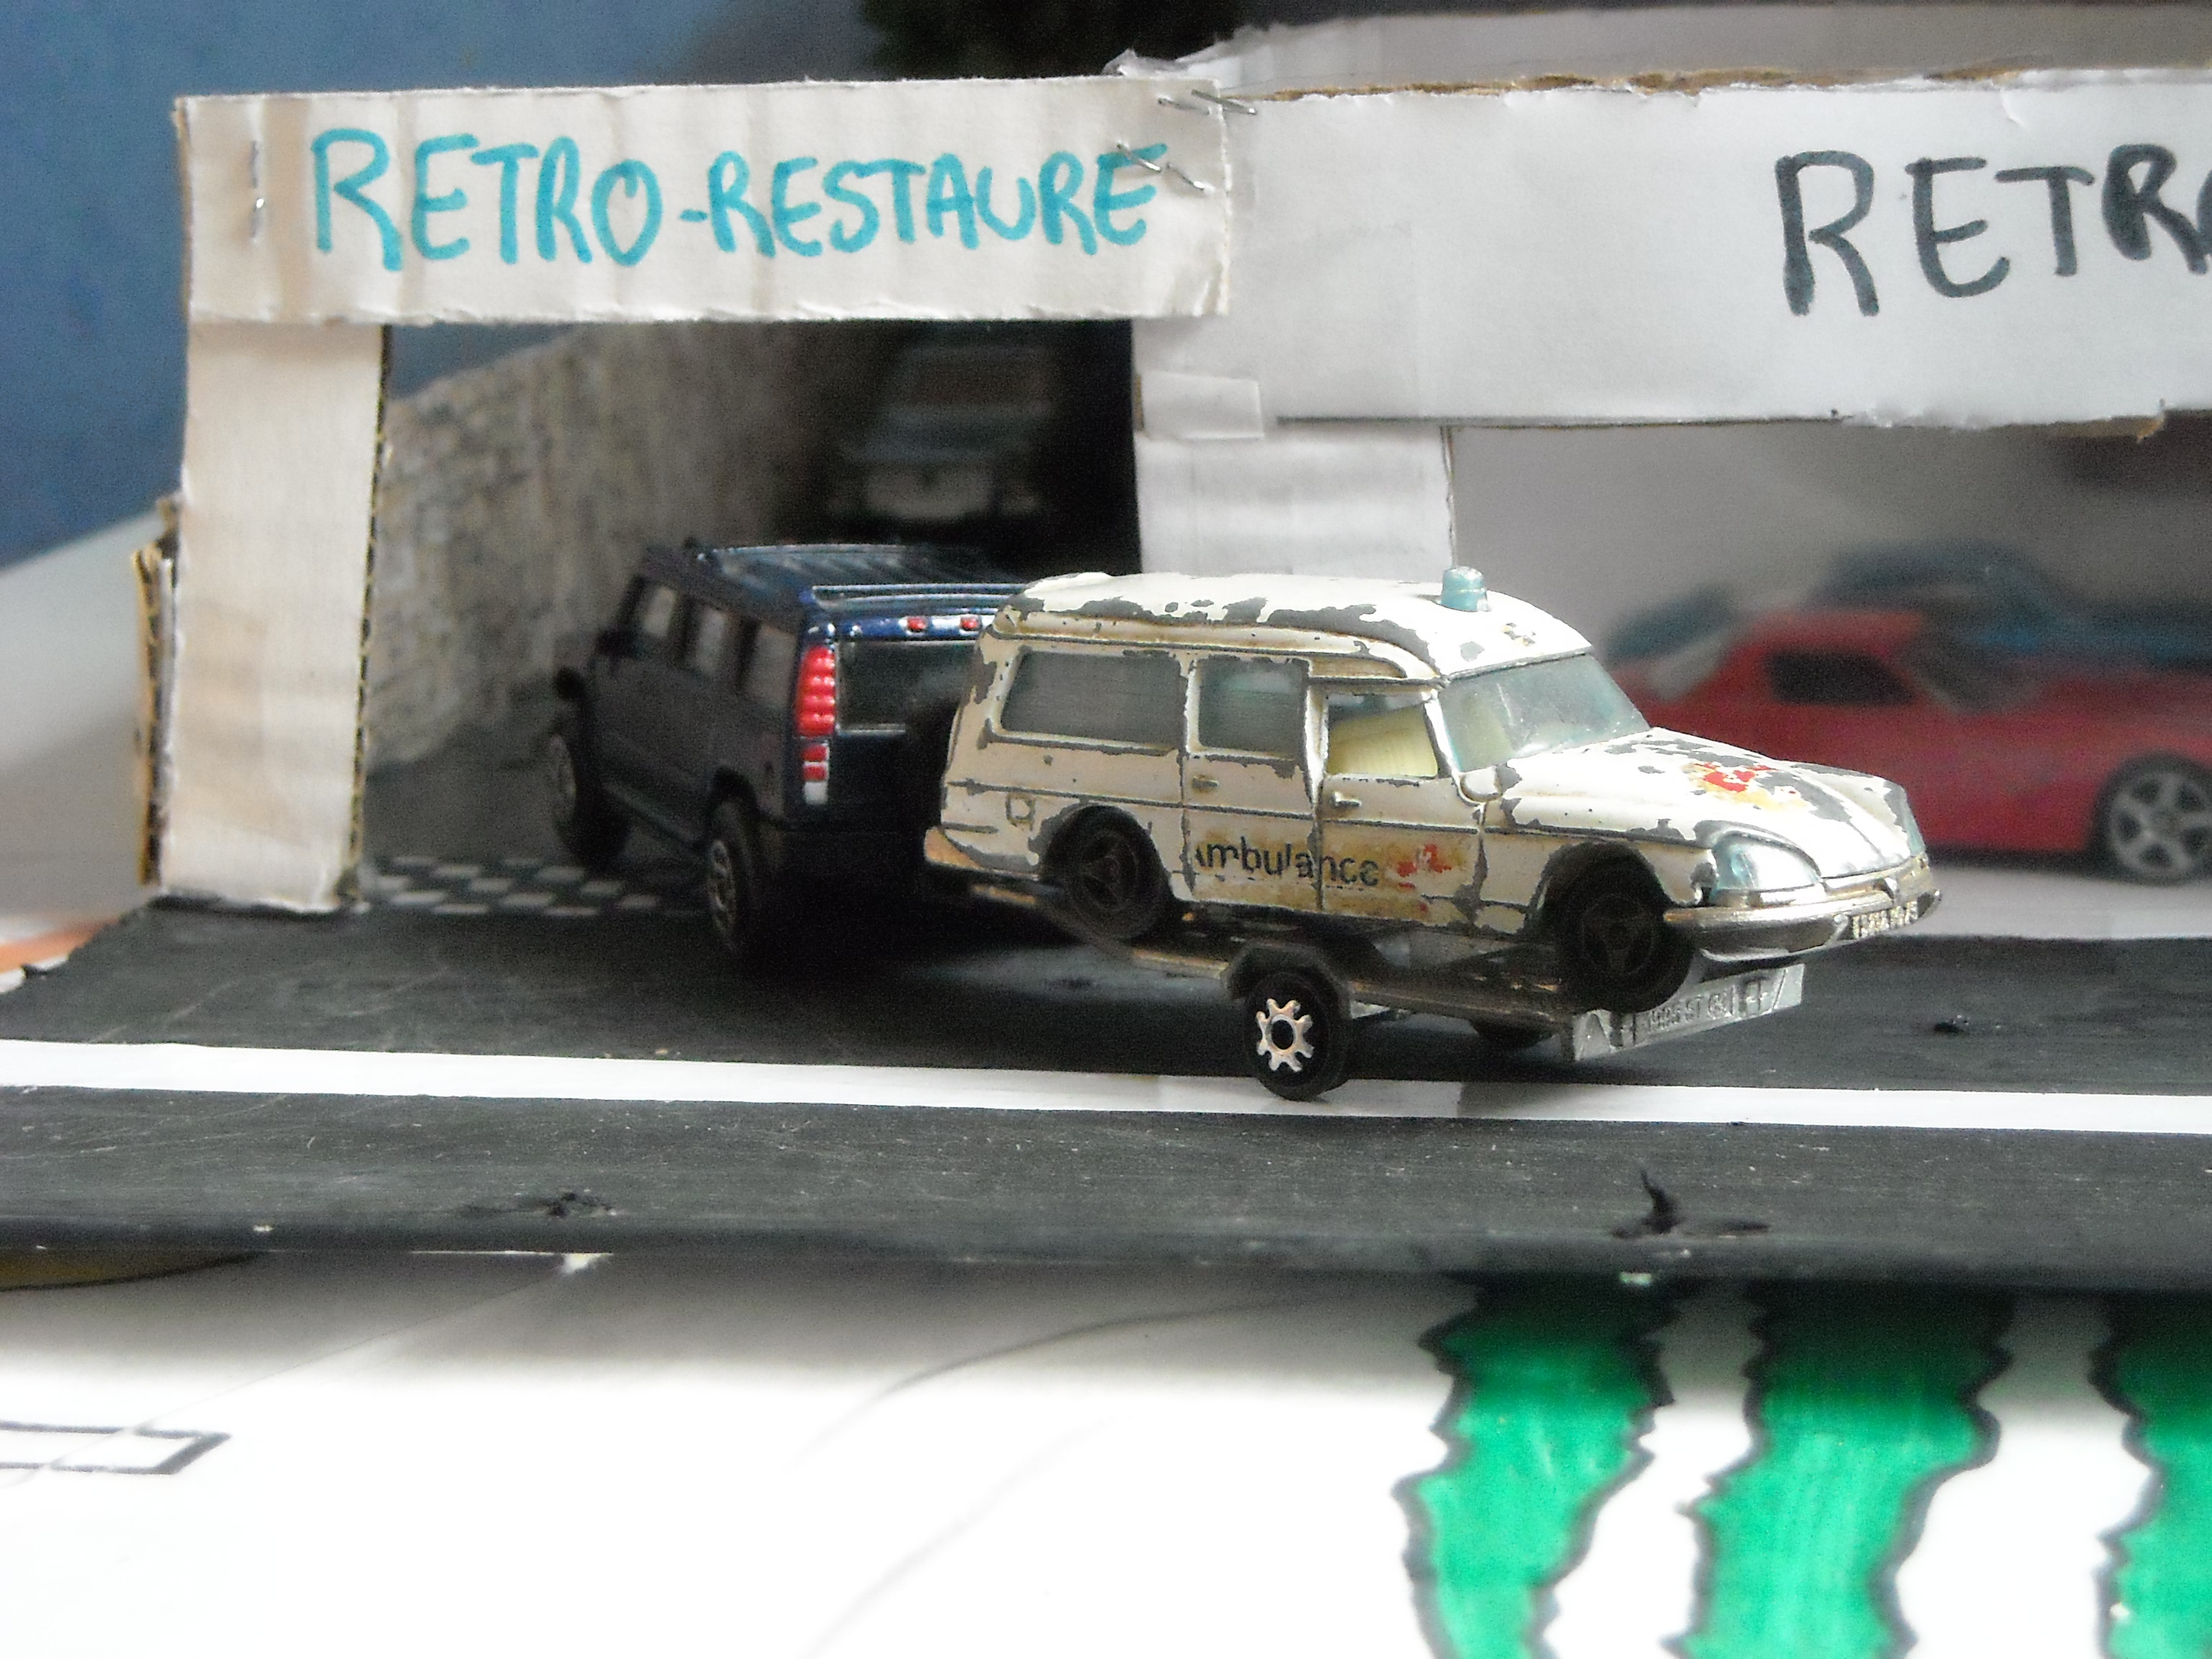 1er garage   Retro Restaure